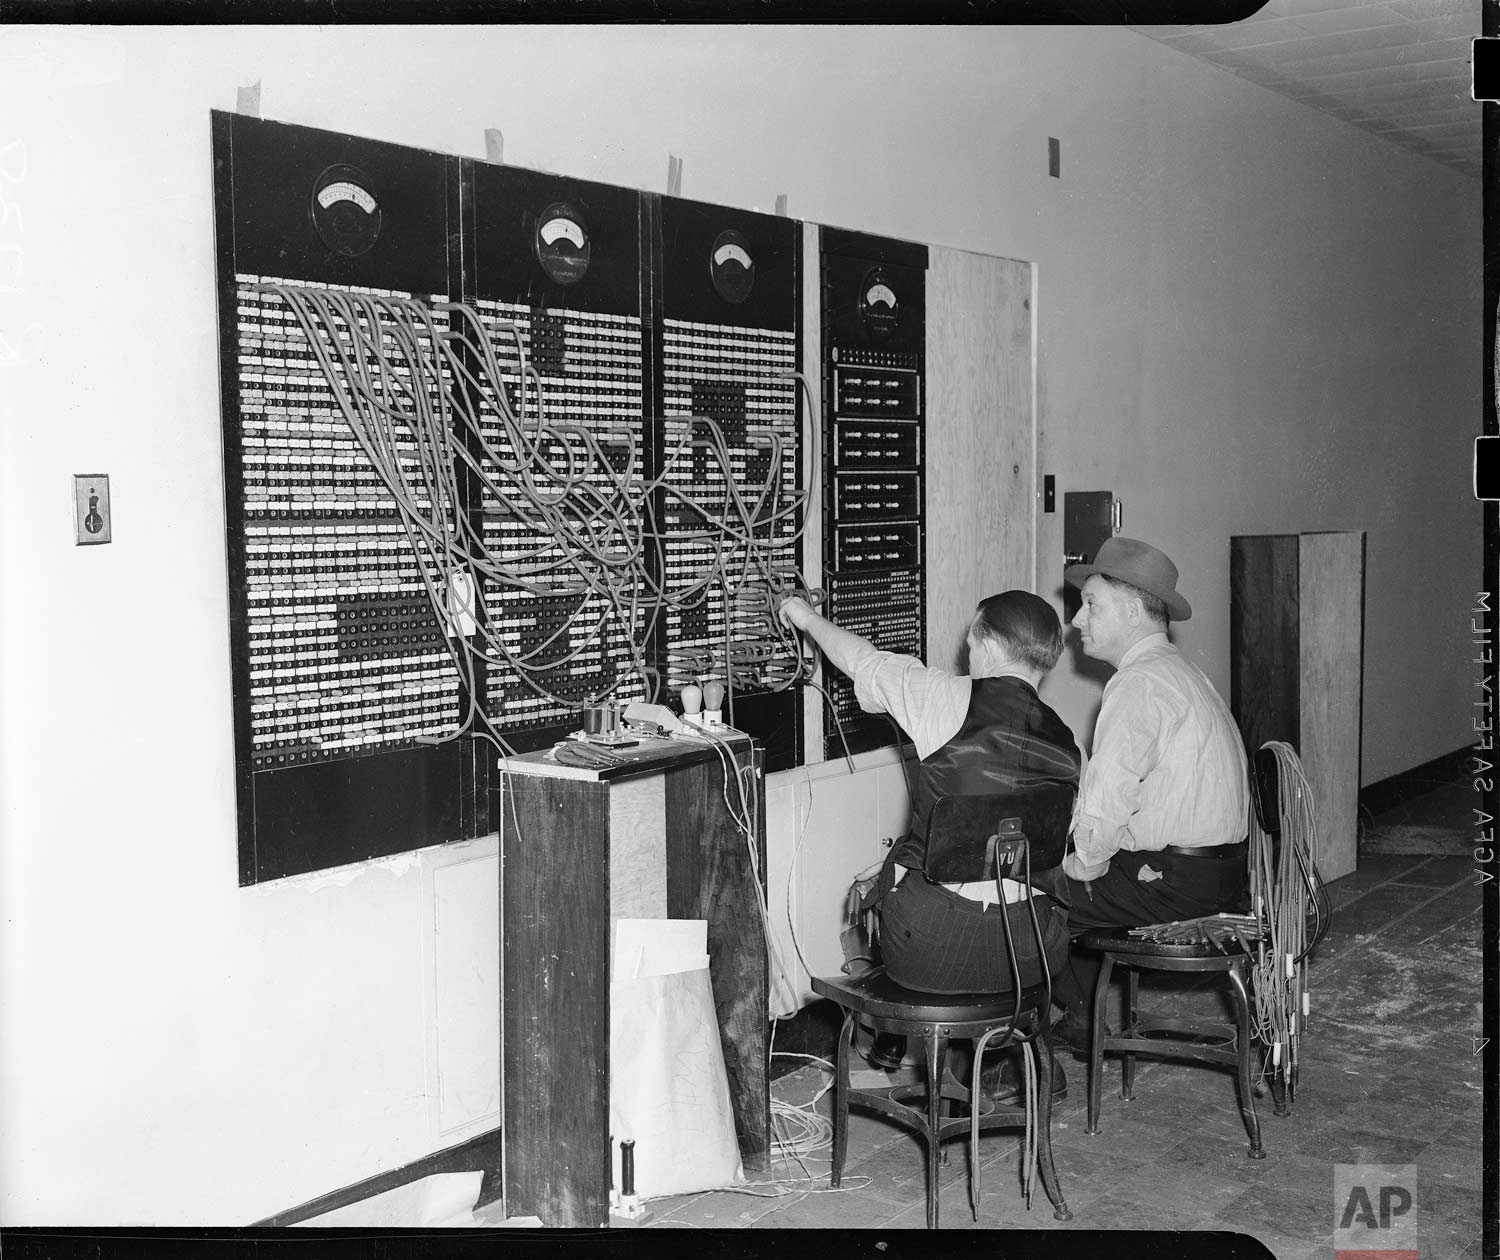 Here is the front of the master switchboard in the new Associated Press building in Rockefeller Center in New York, Dec. 18, 1938. This switchboard, comprising 157 circuits links 285,000 miles of leased wires. (AP Photo/Corporate Archives)